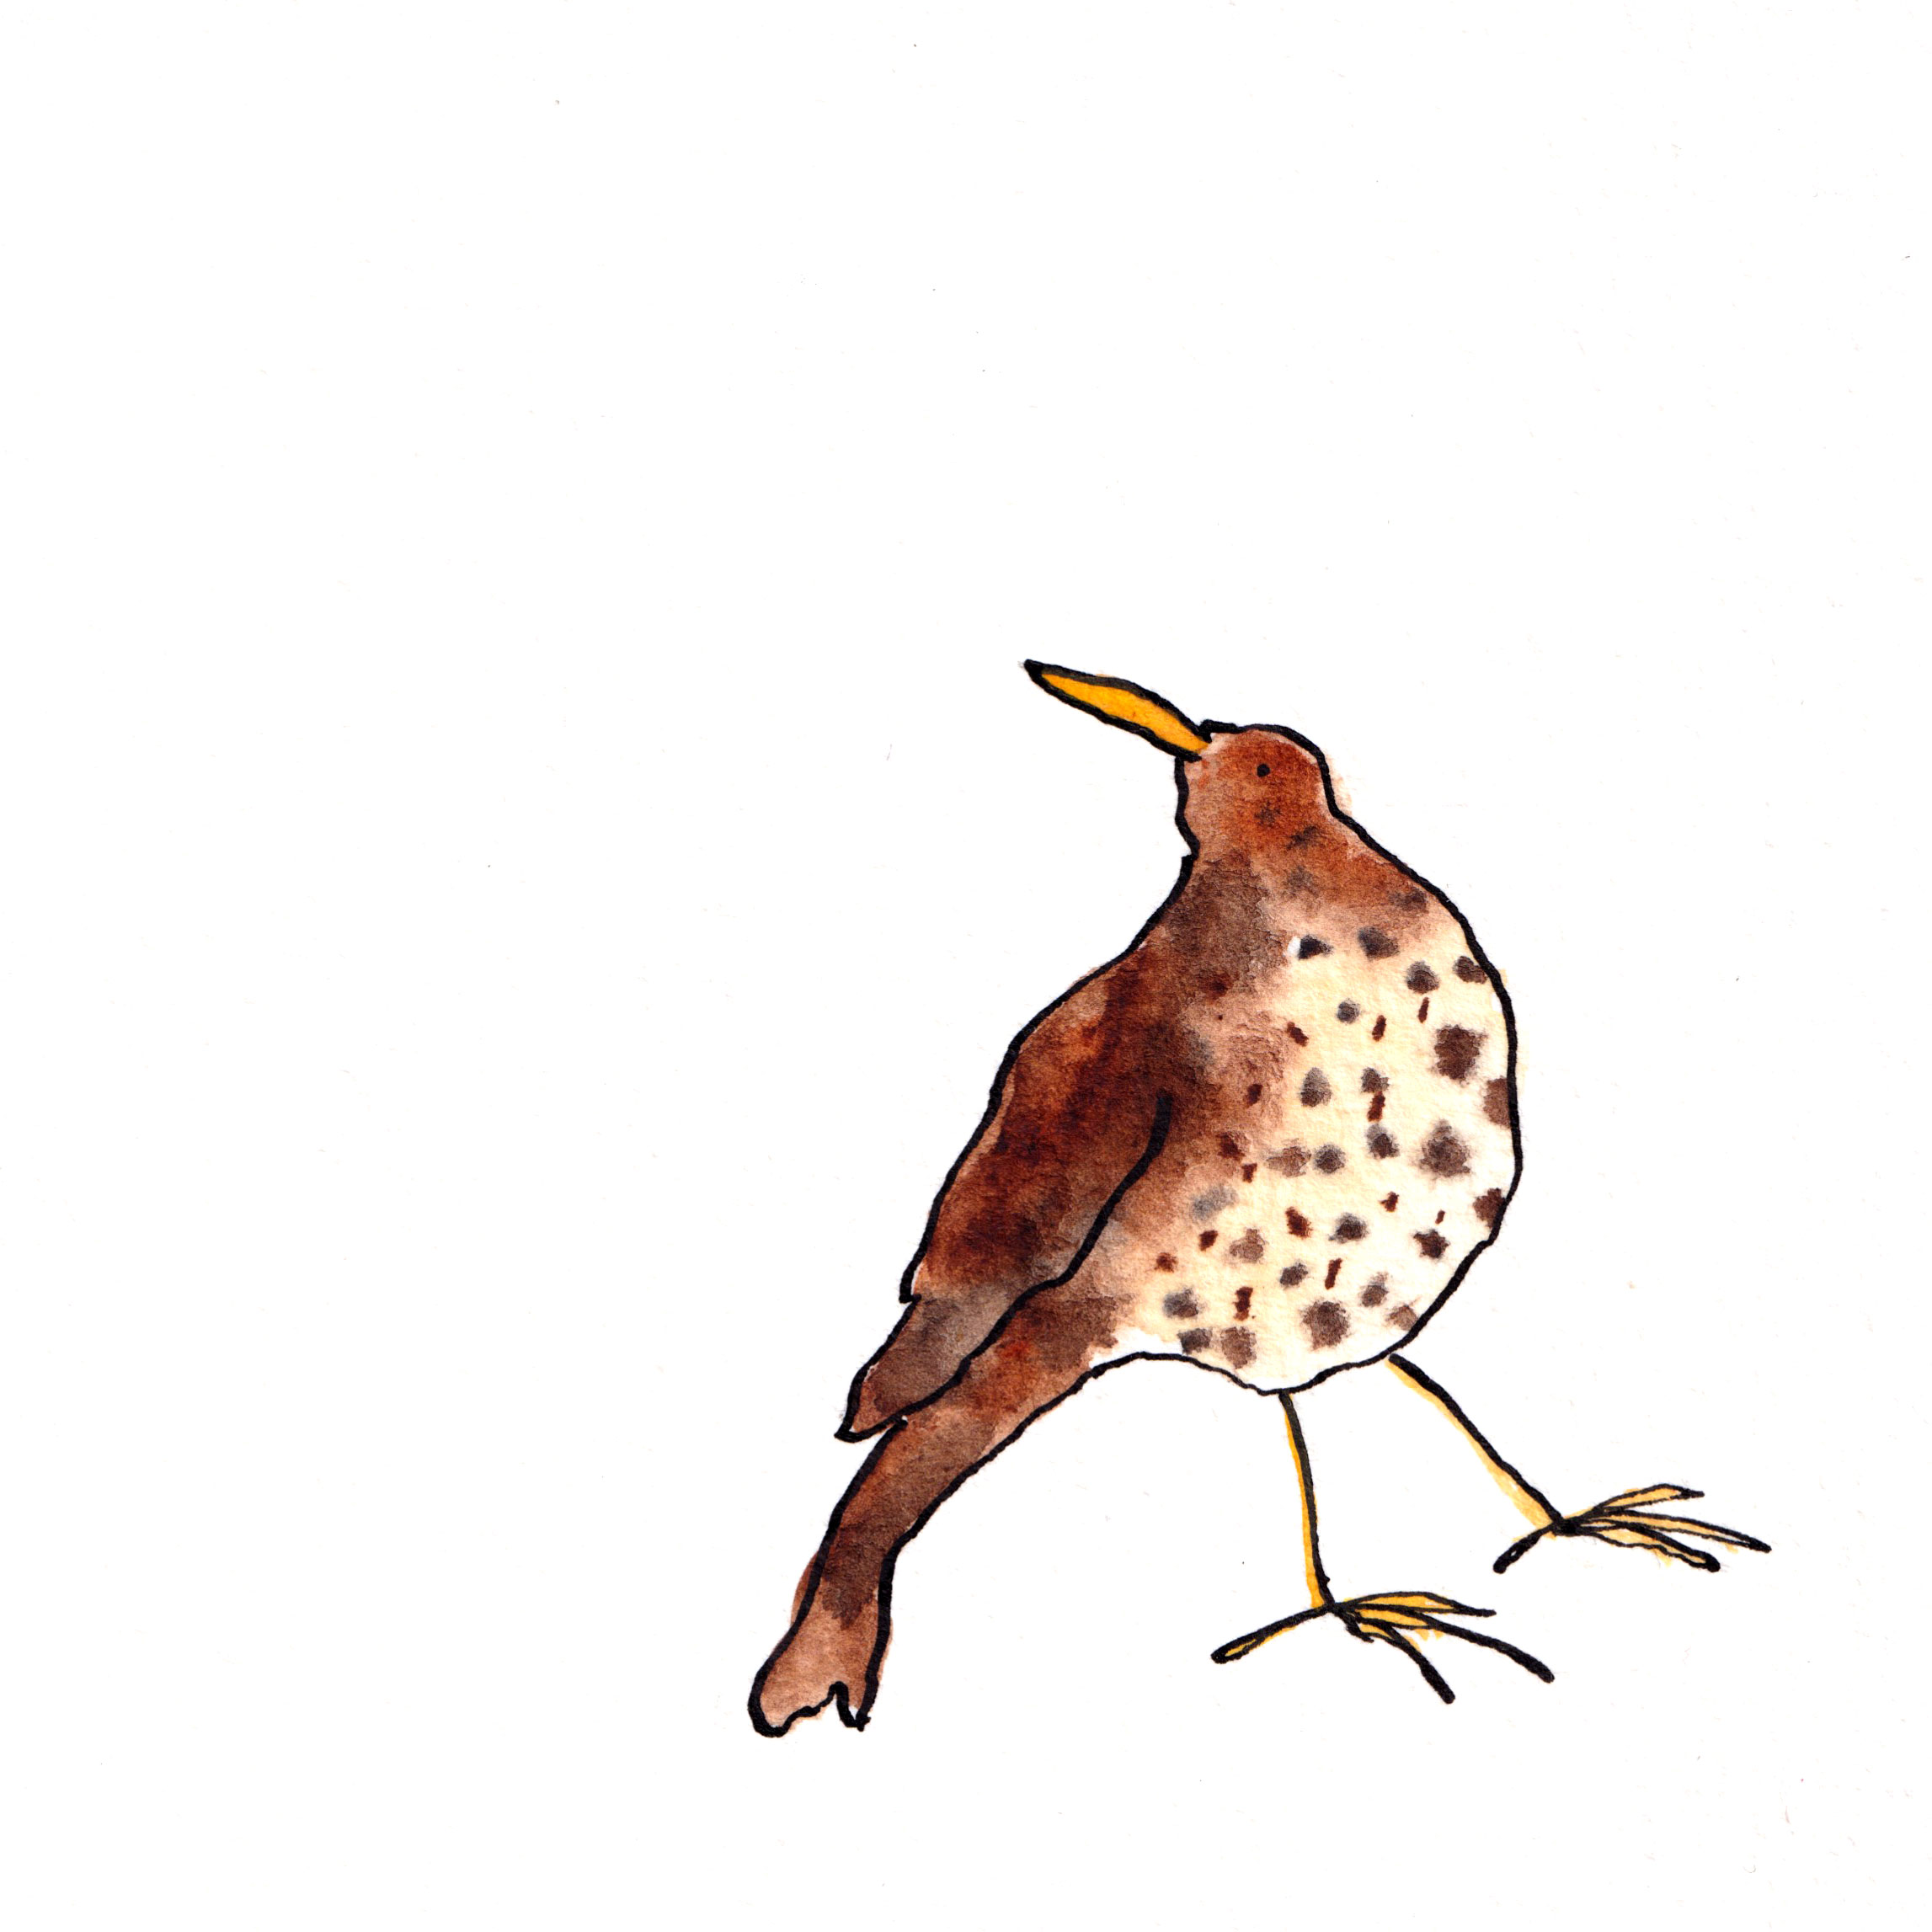 Watercolour drawing of a song thrush